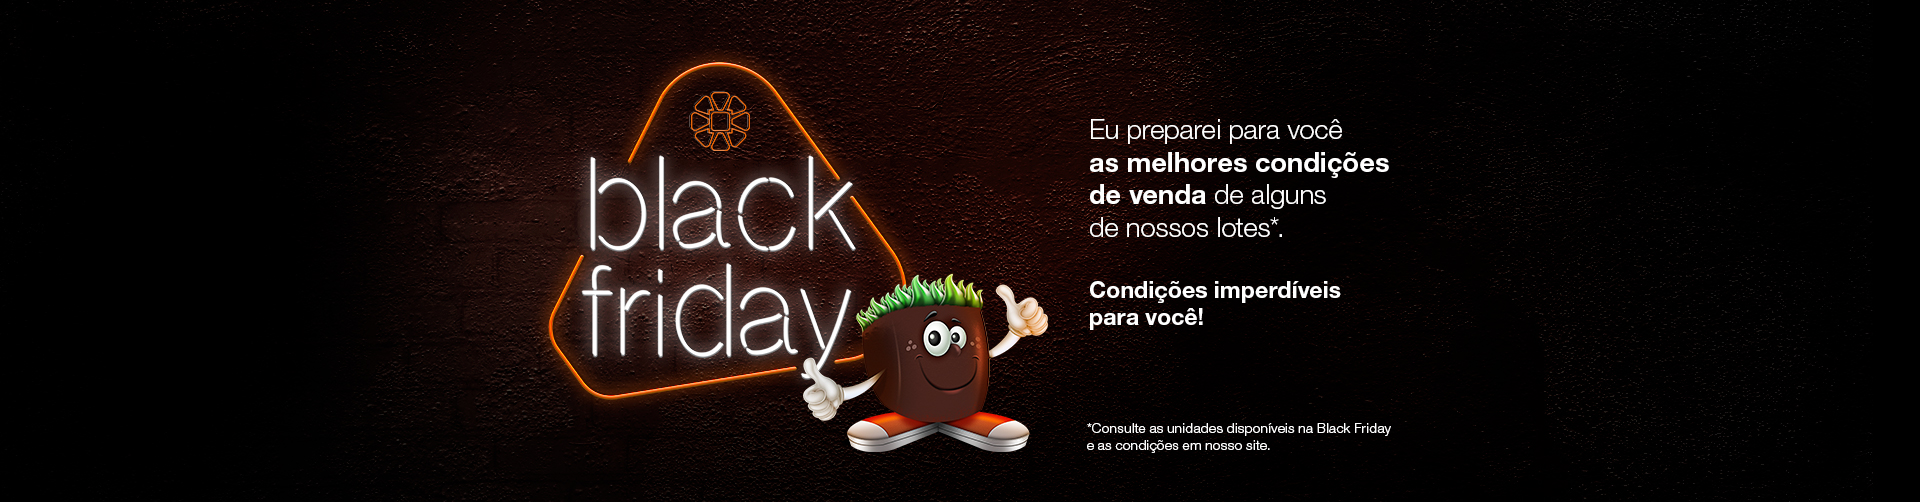 Cemara Black Friday